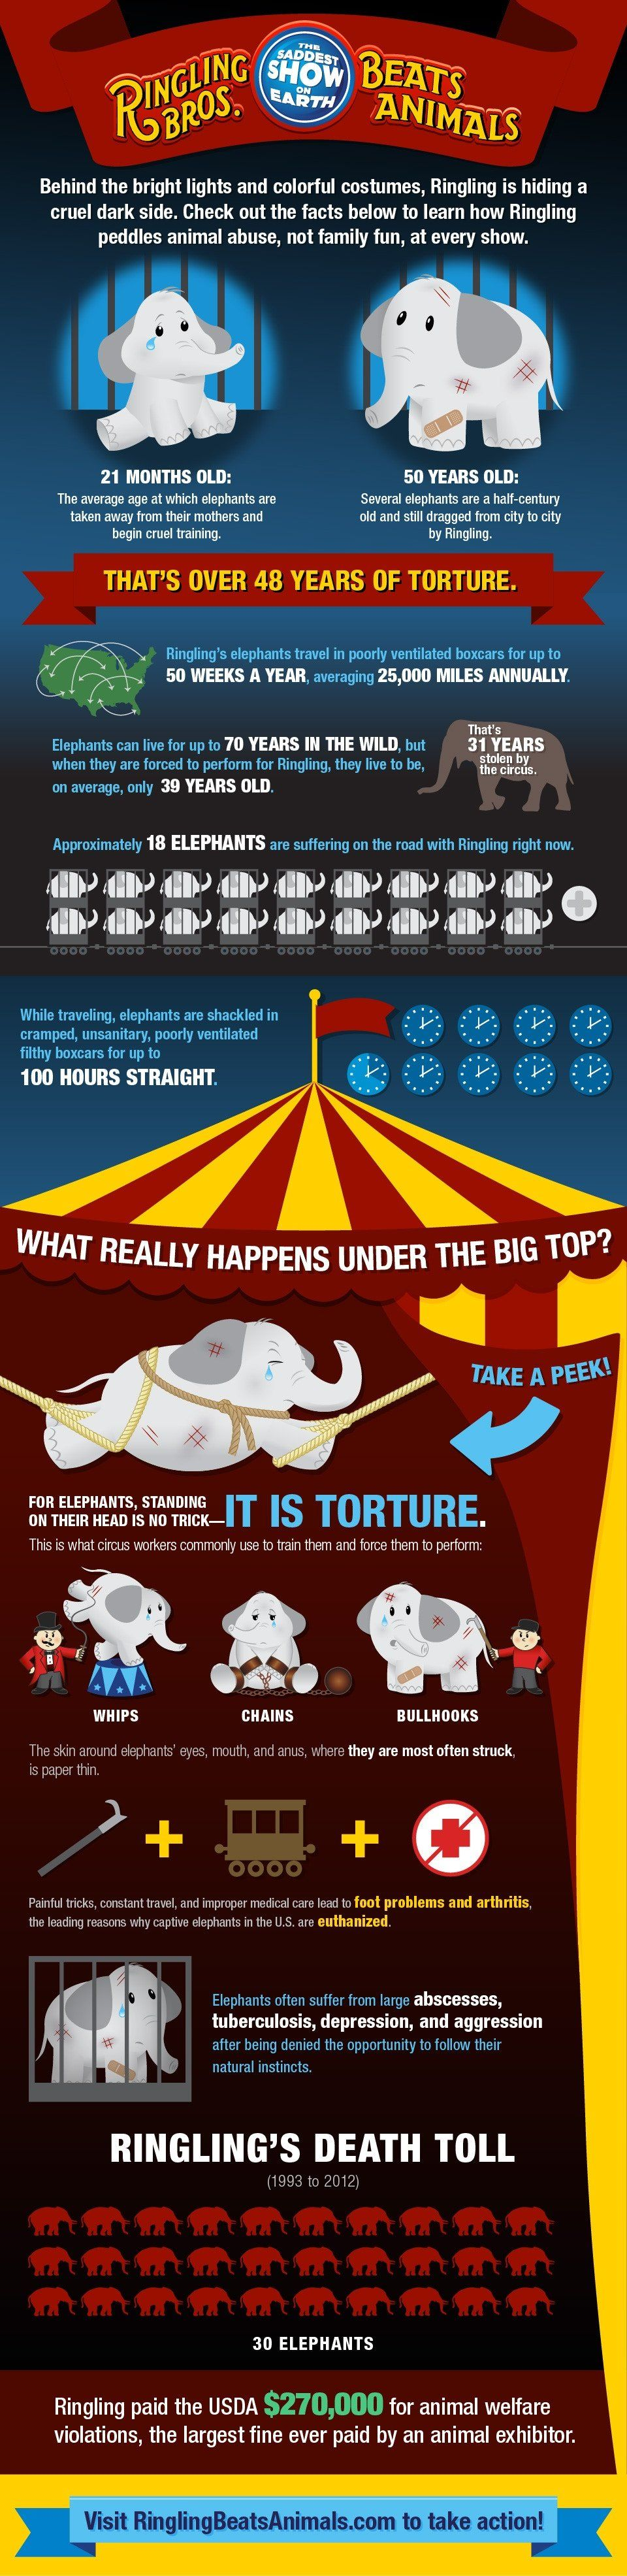 Please stop going to the circus  It's an awful place, and